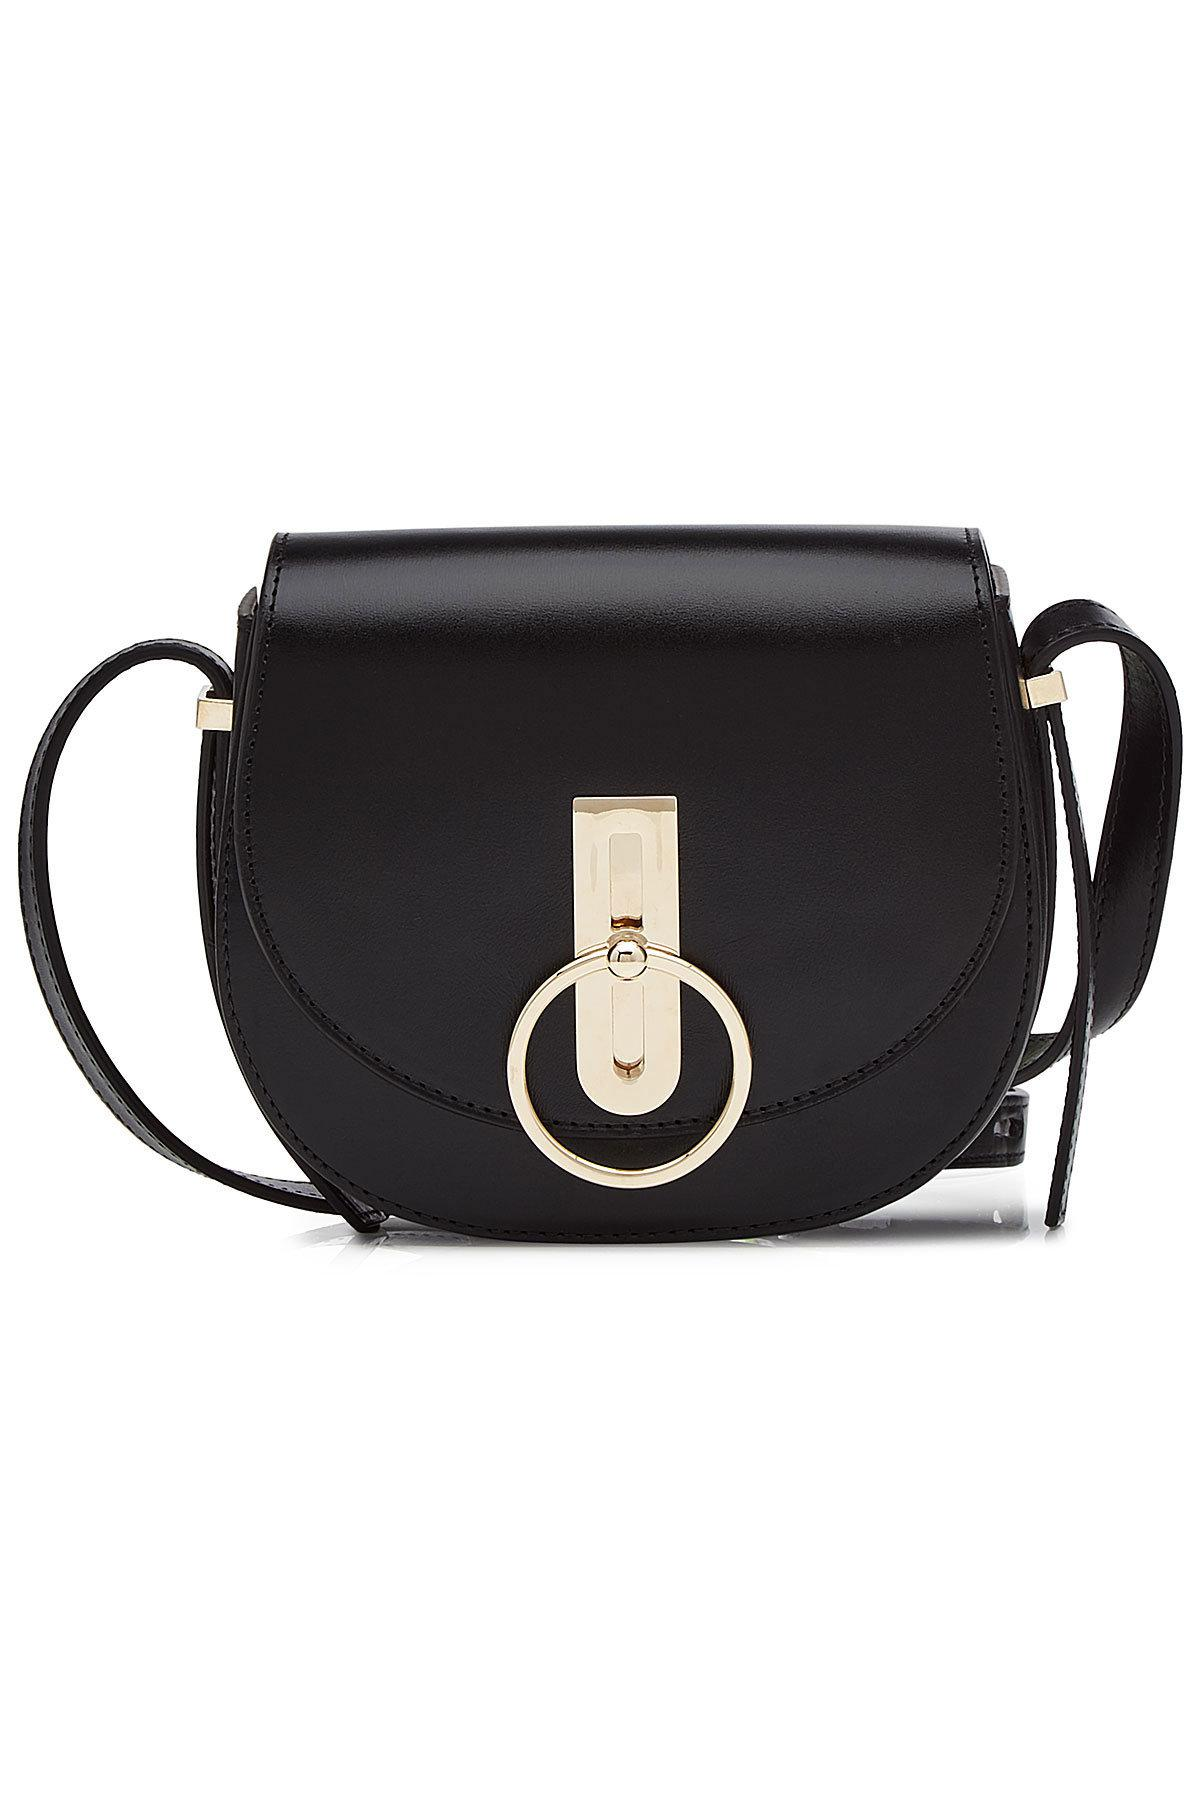 O-ring shoulder bag - Black Nina Ricci ED1uI